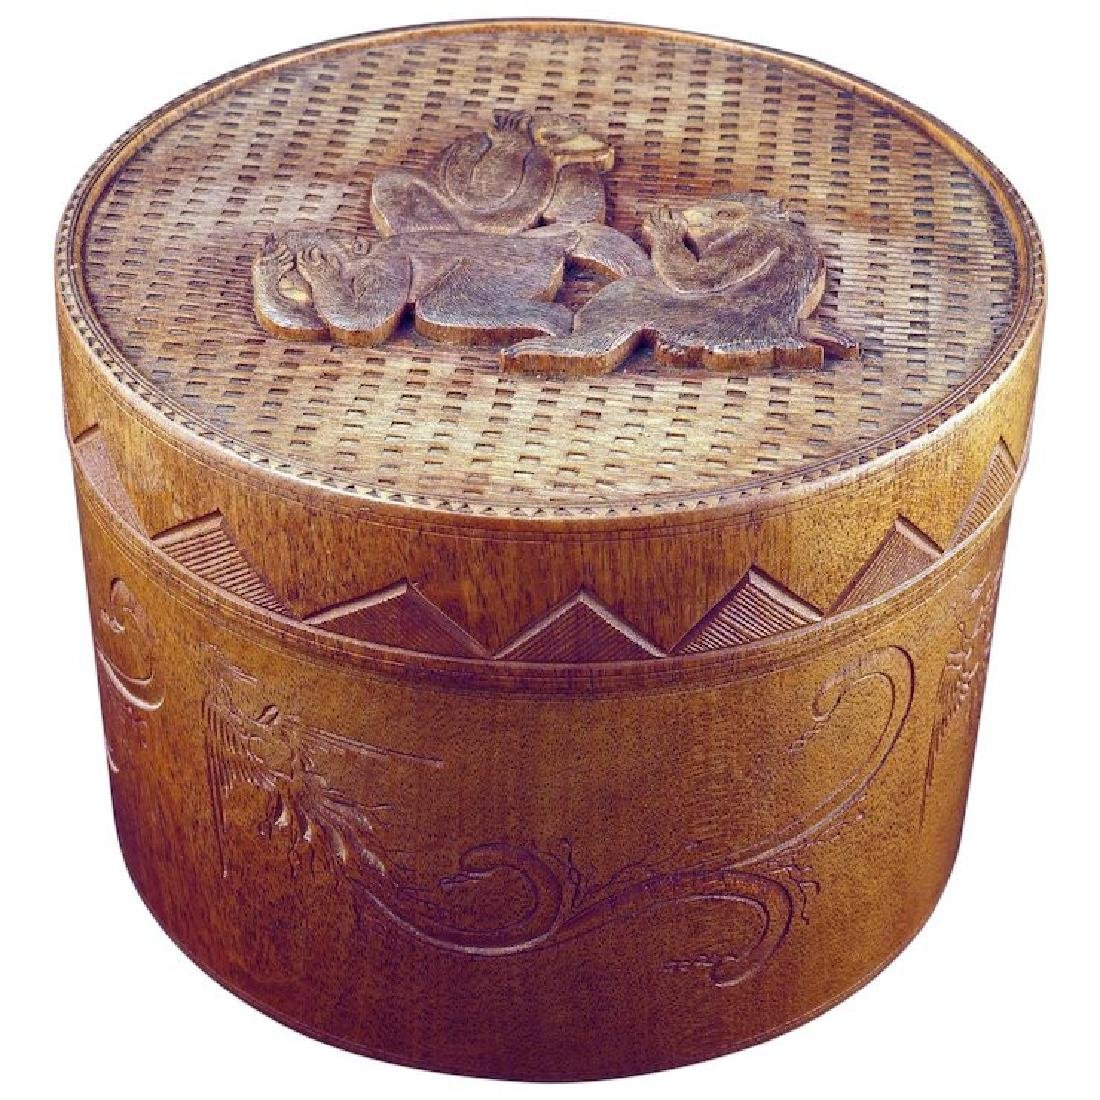 Japanese vintage wood carved lidded cylindrical box or